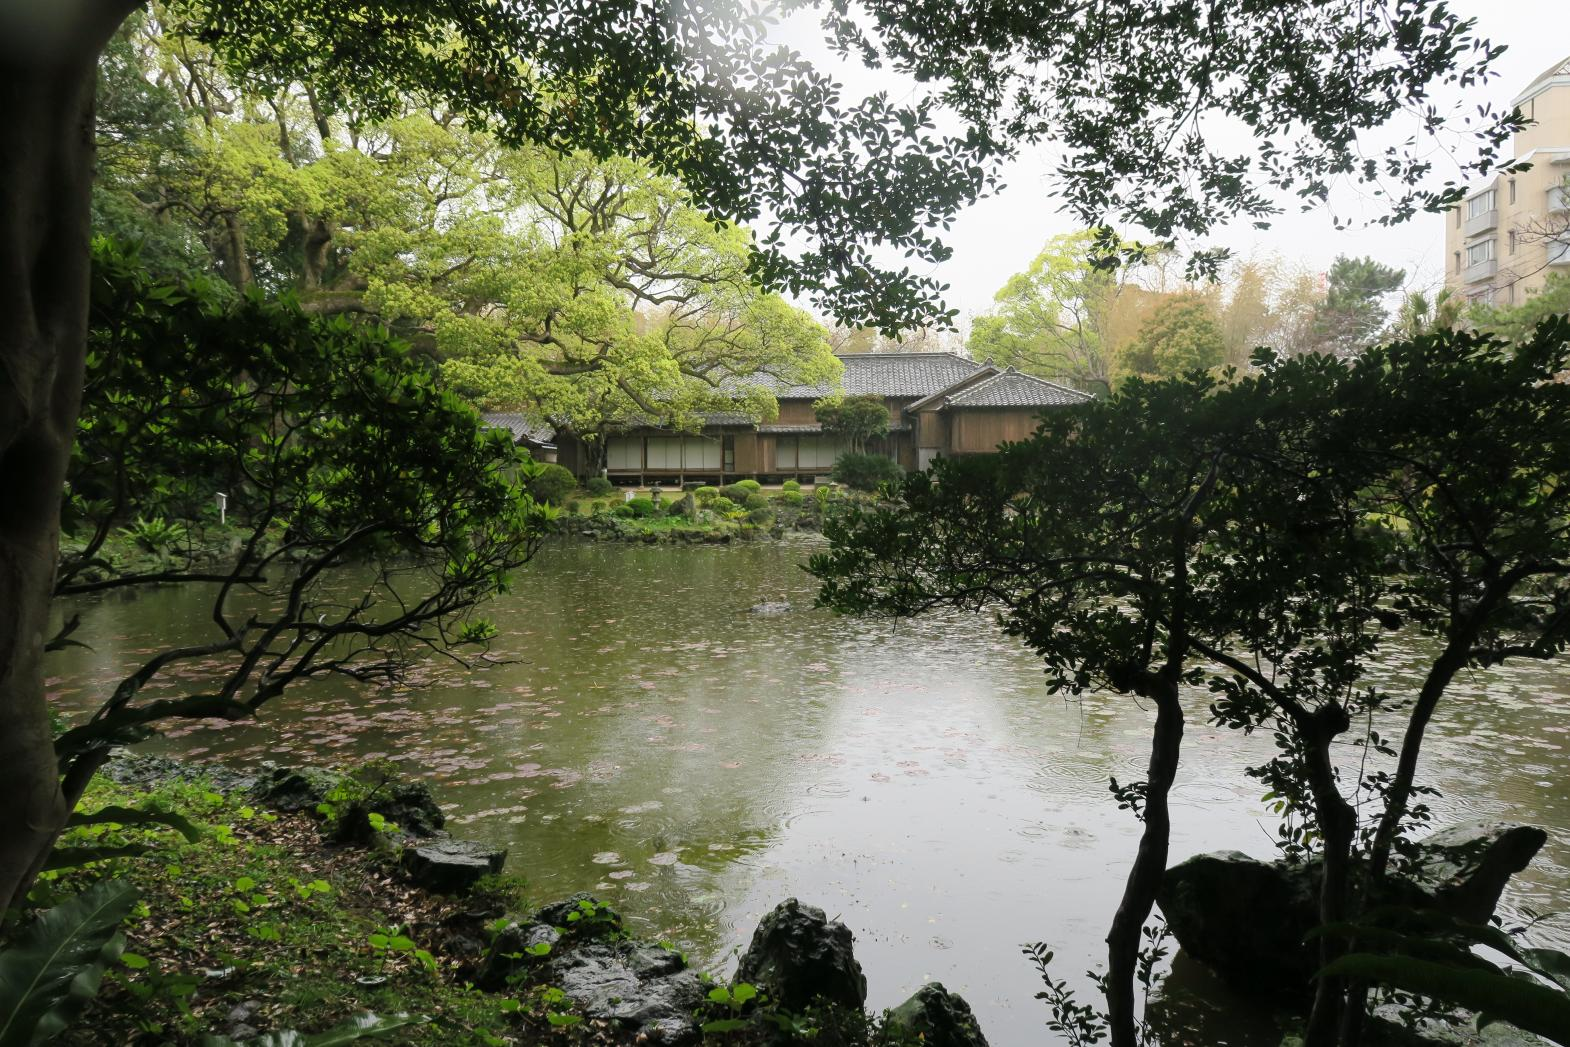 4.Lord Goto's Residence and Gardens-3